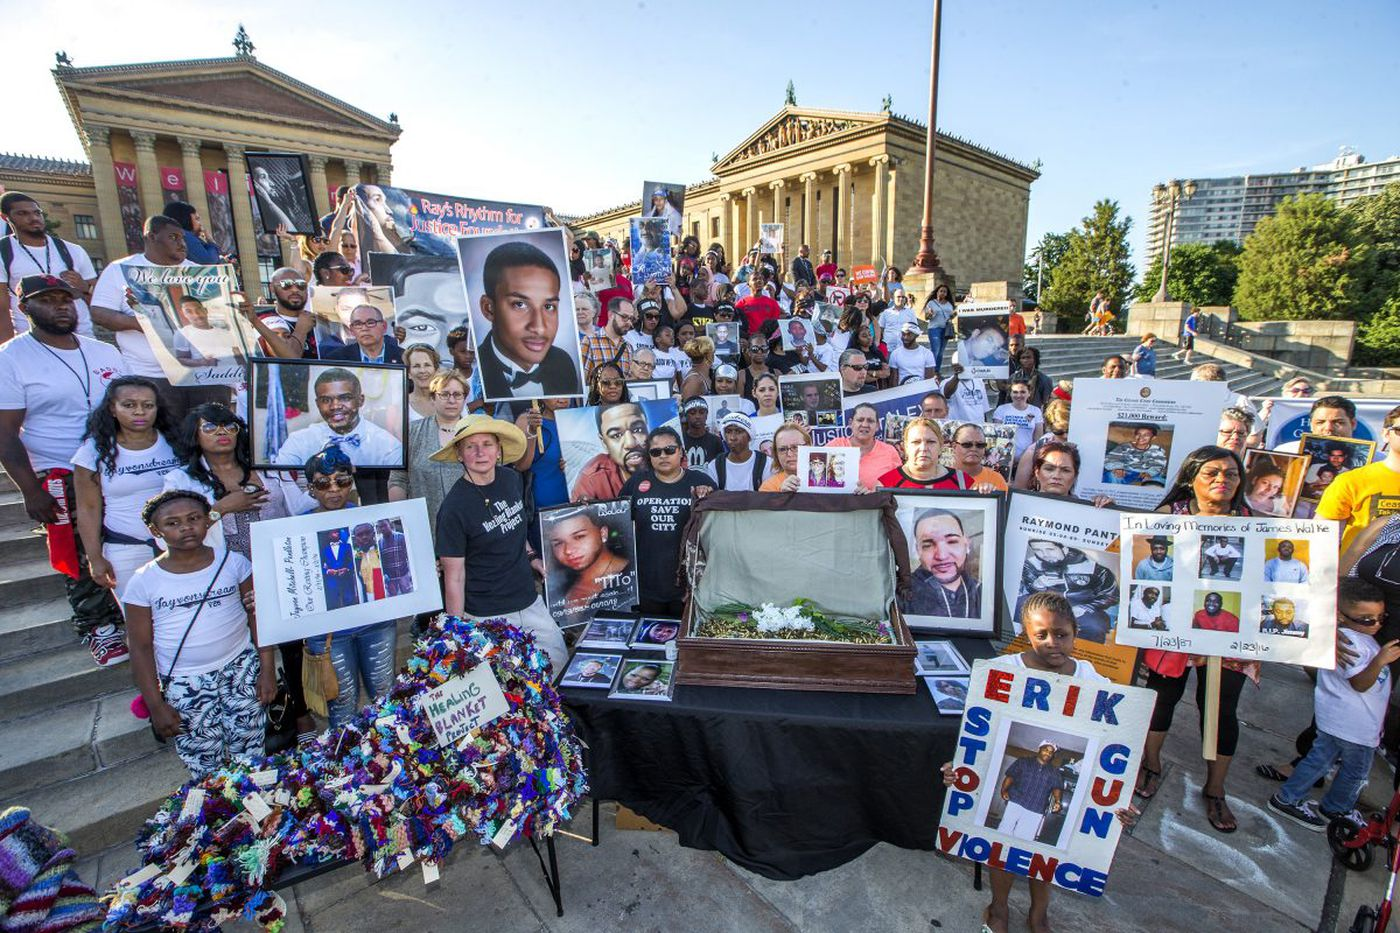 Today is National Day of Remembrance for Murder Victims